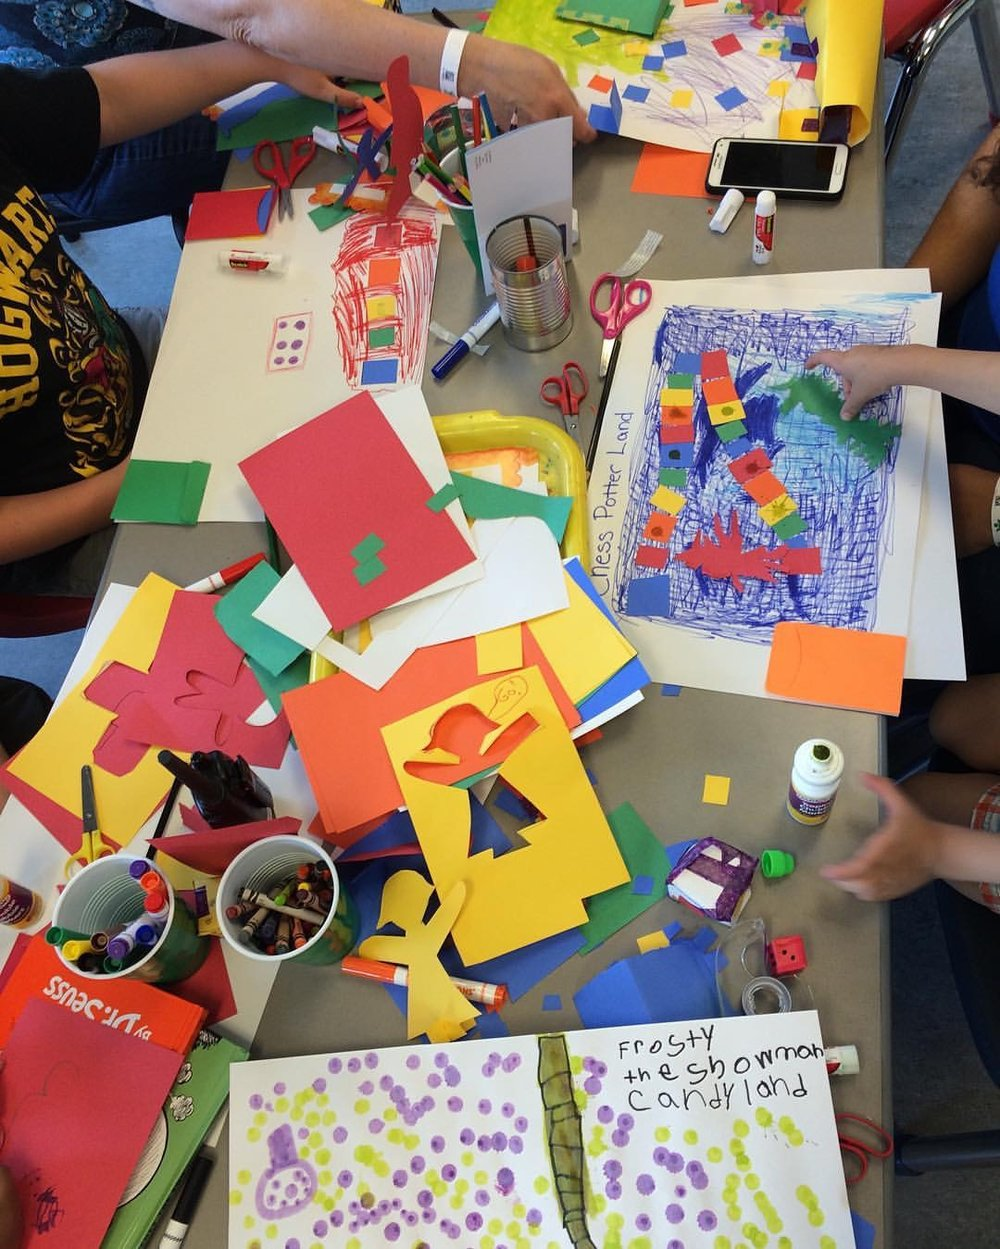 Games created by children at TCMU